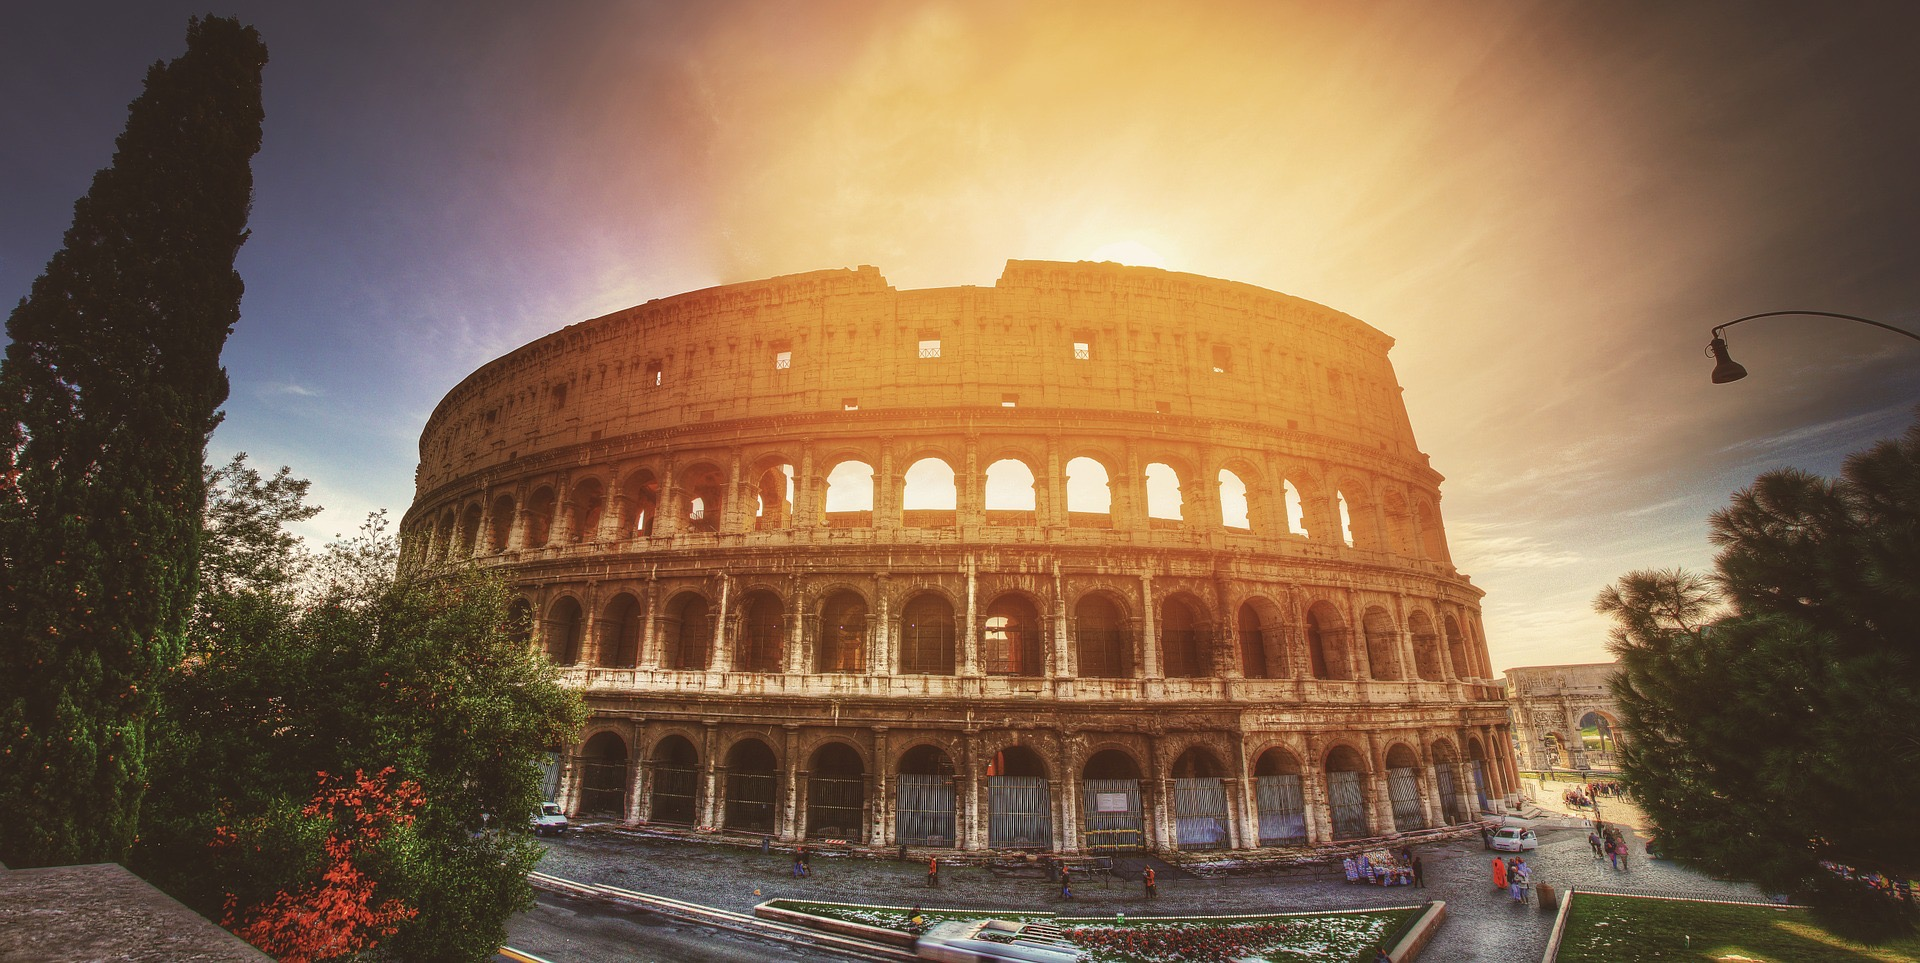 rome-colosseum-coliseum-special-offseason-holiday-sunset.jpg